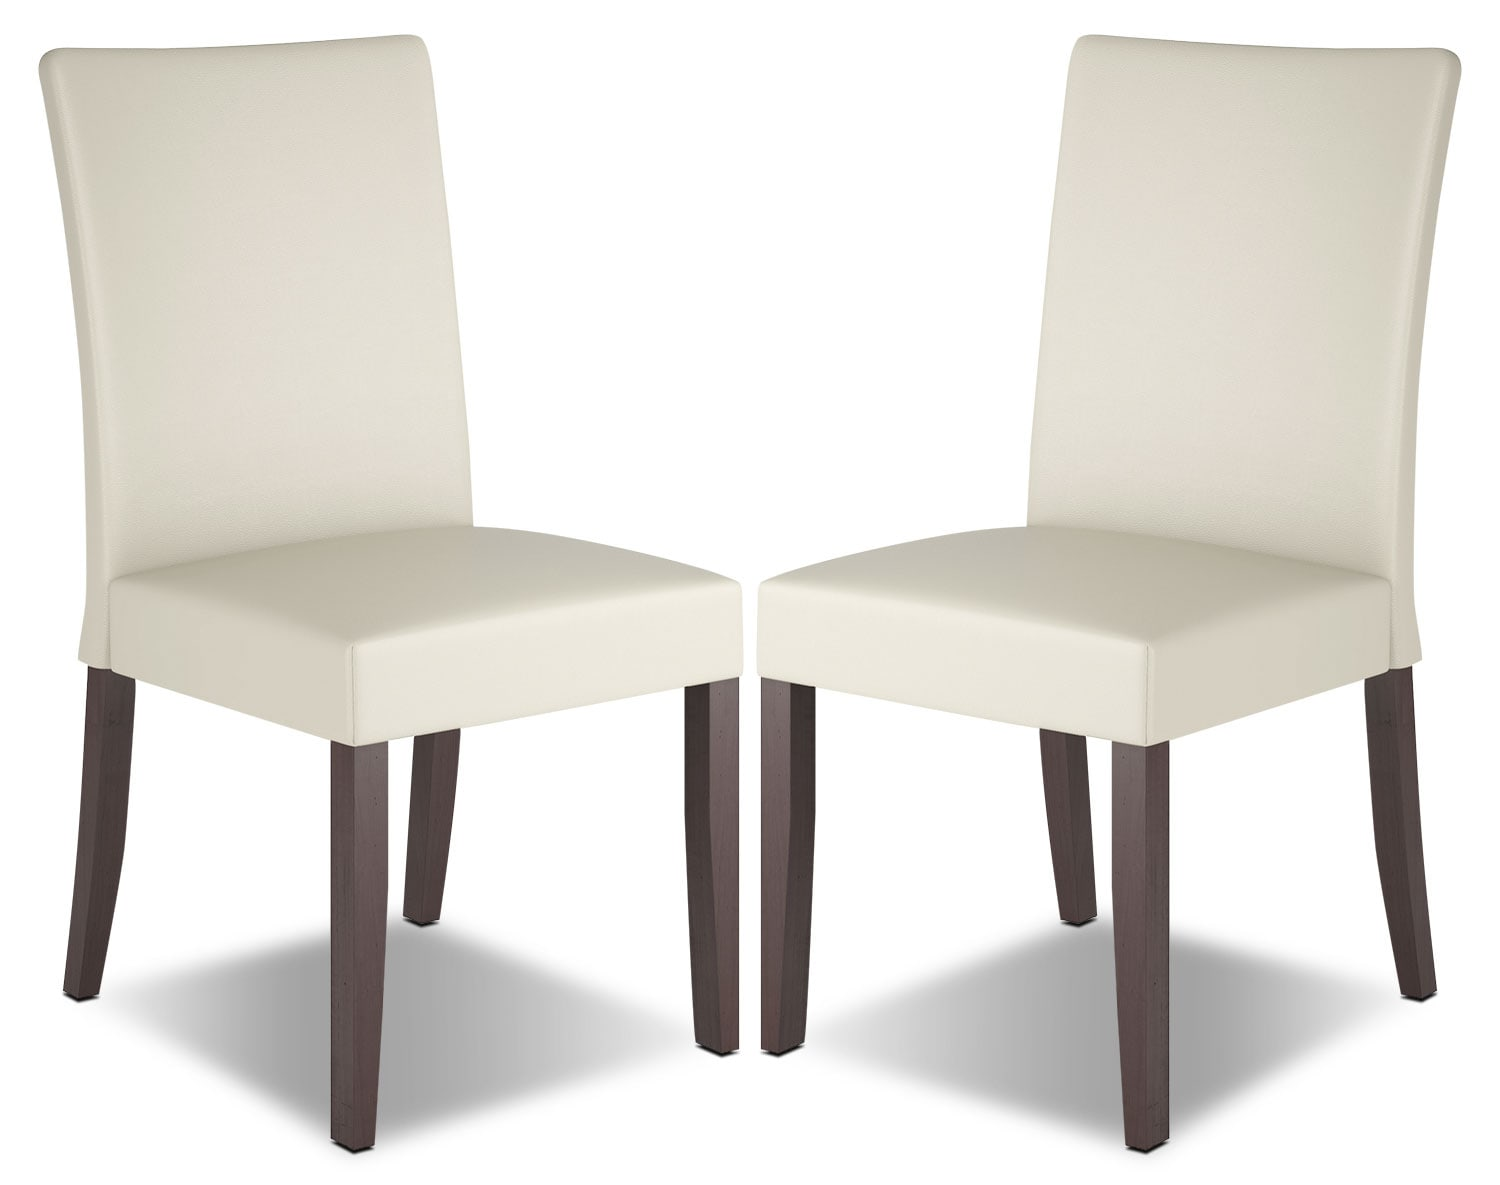 Dining Room Furniture - Atwood Faux Leather Dining Chair, Set of 2 – Cream